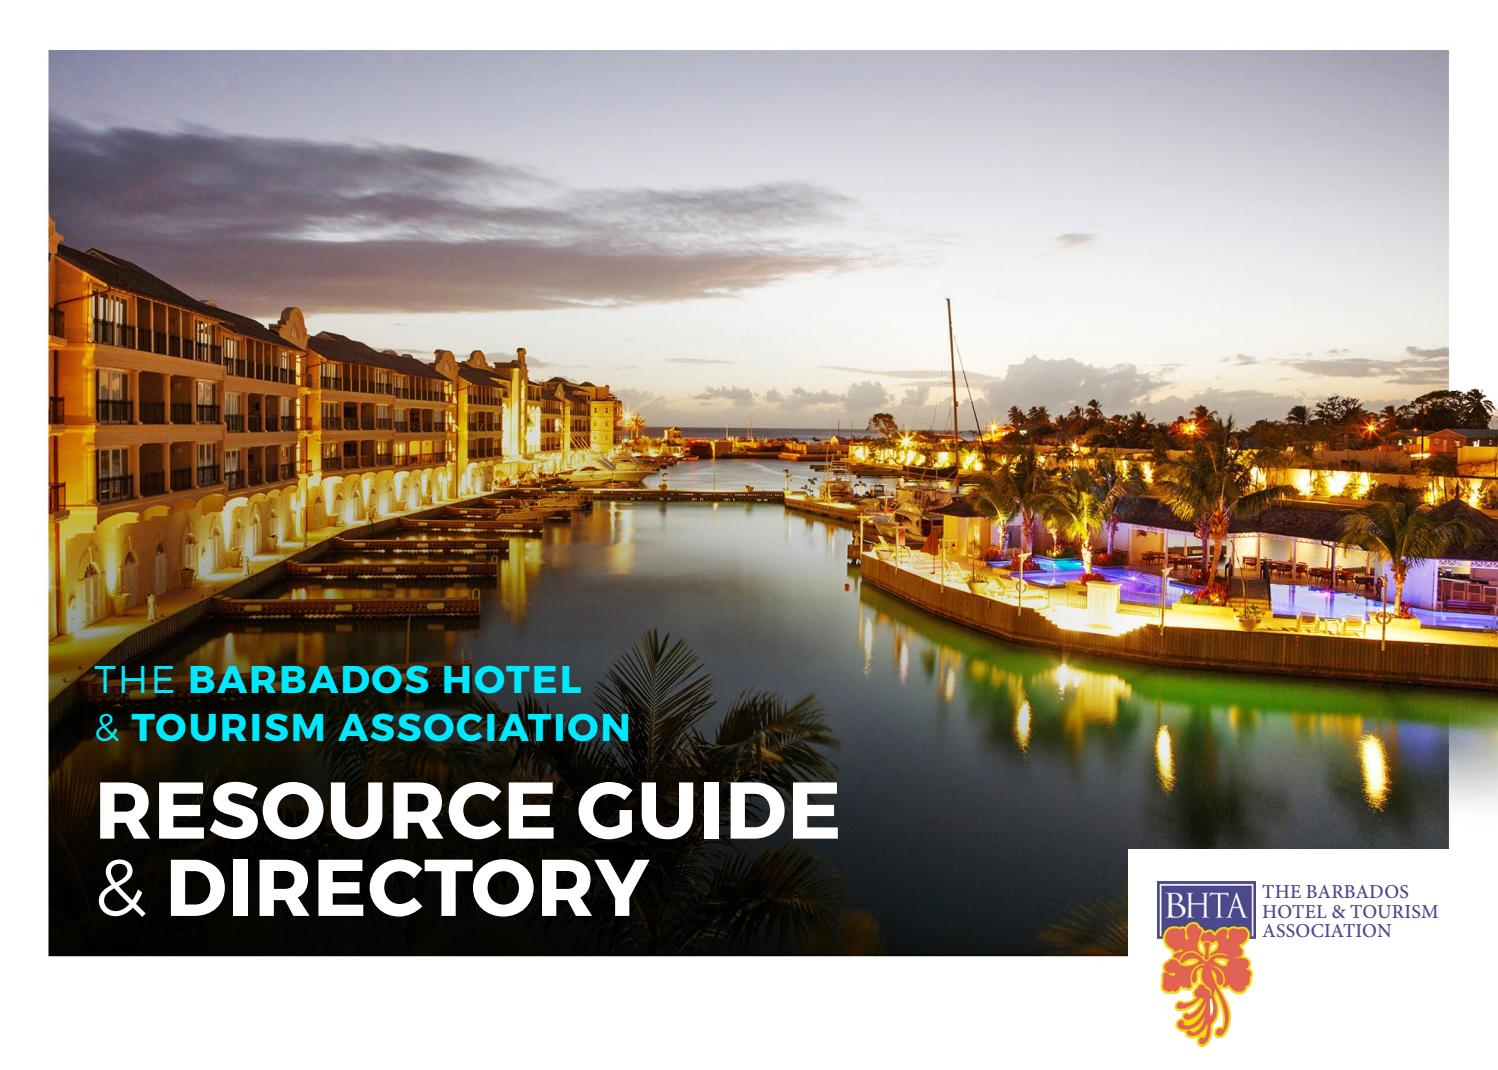 BHTA Resource Guide & Directory 2018 by Caribbean Dreams